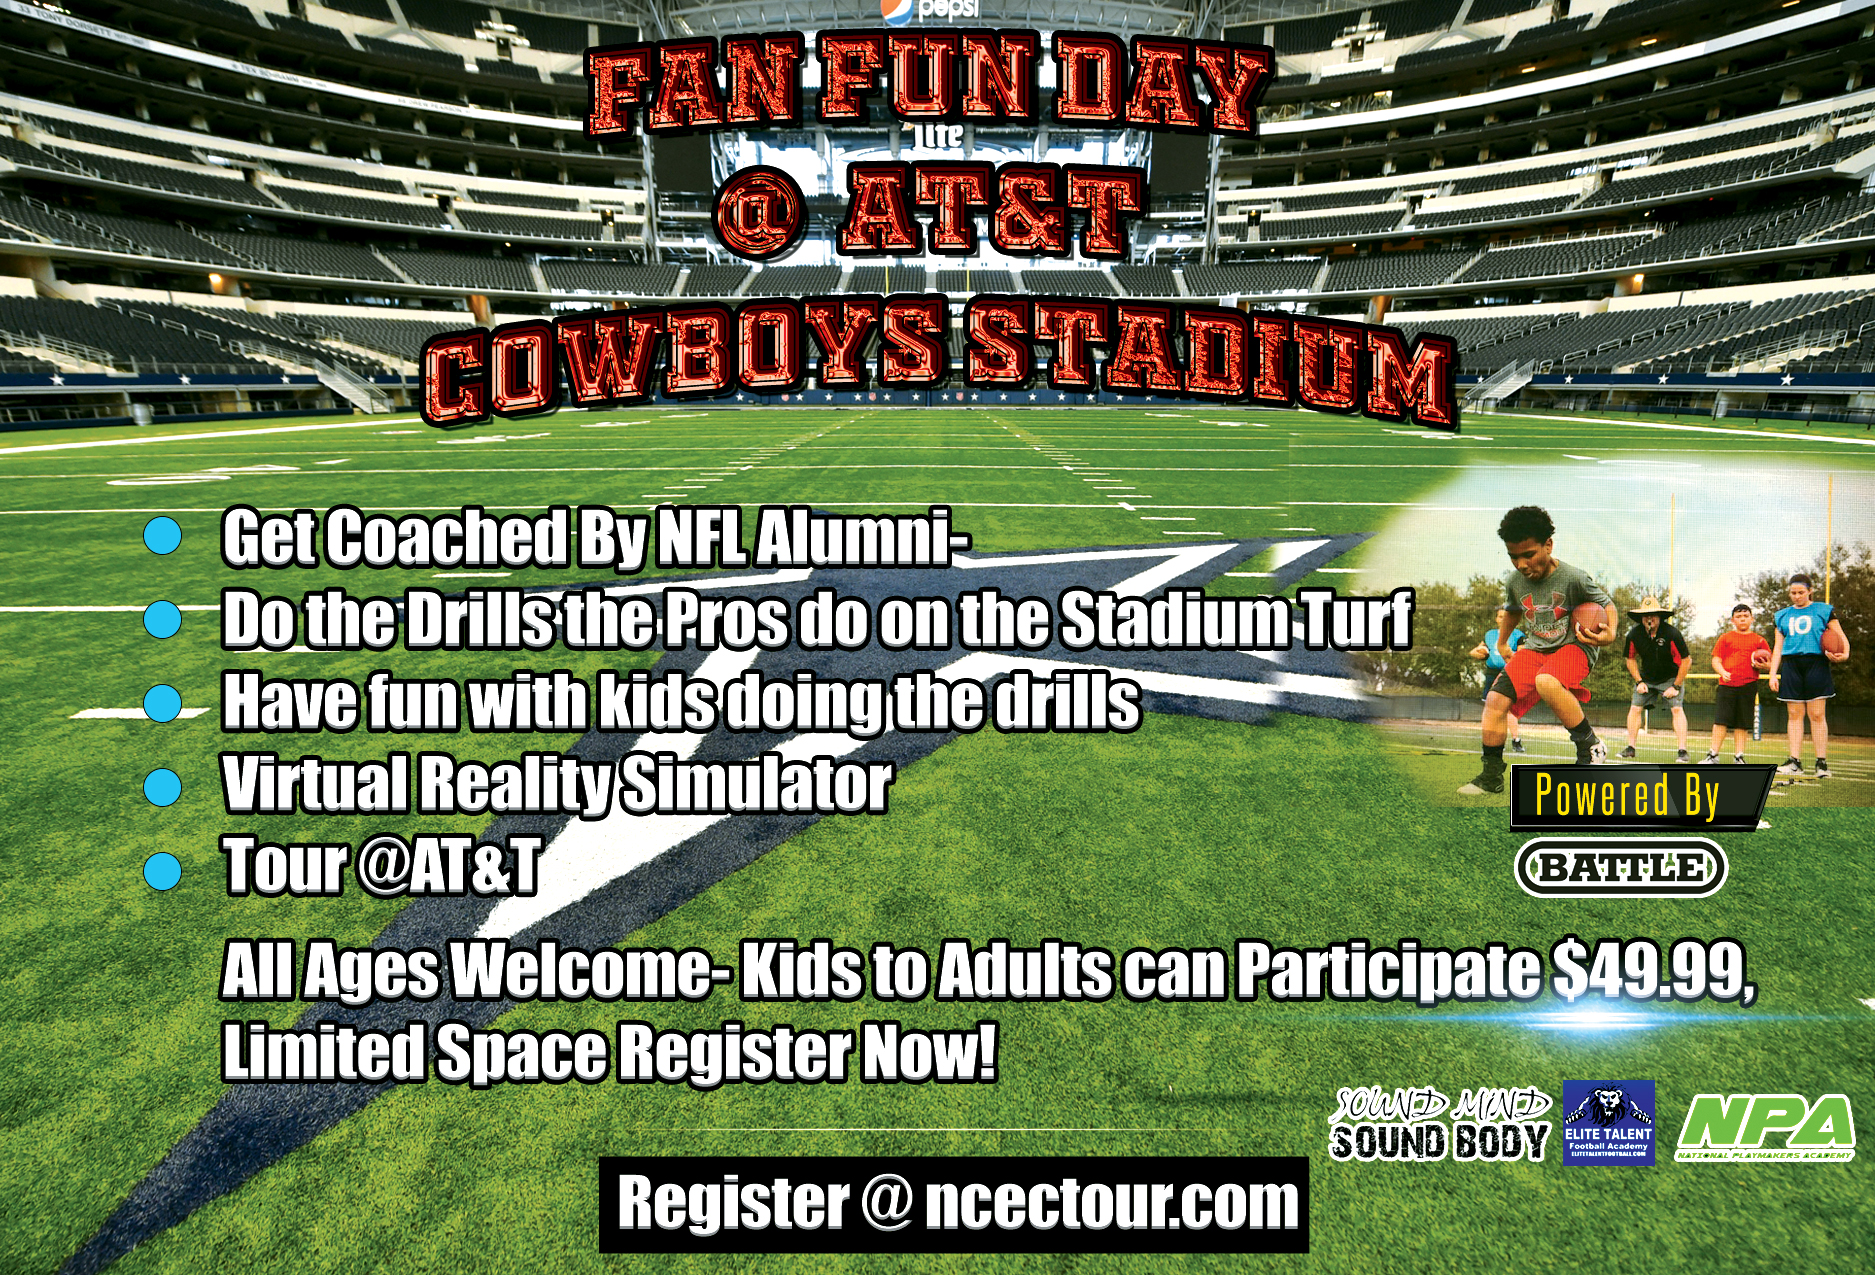 NCEC To Host FAN Day at AT&T Dallas Cowboys Stadium